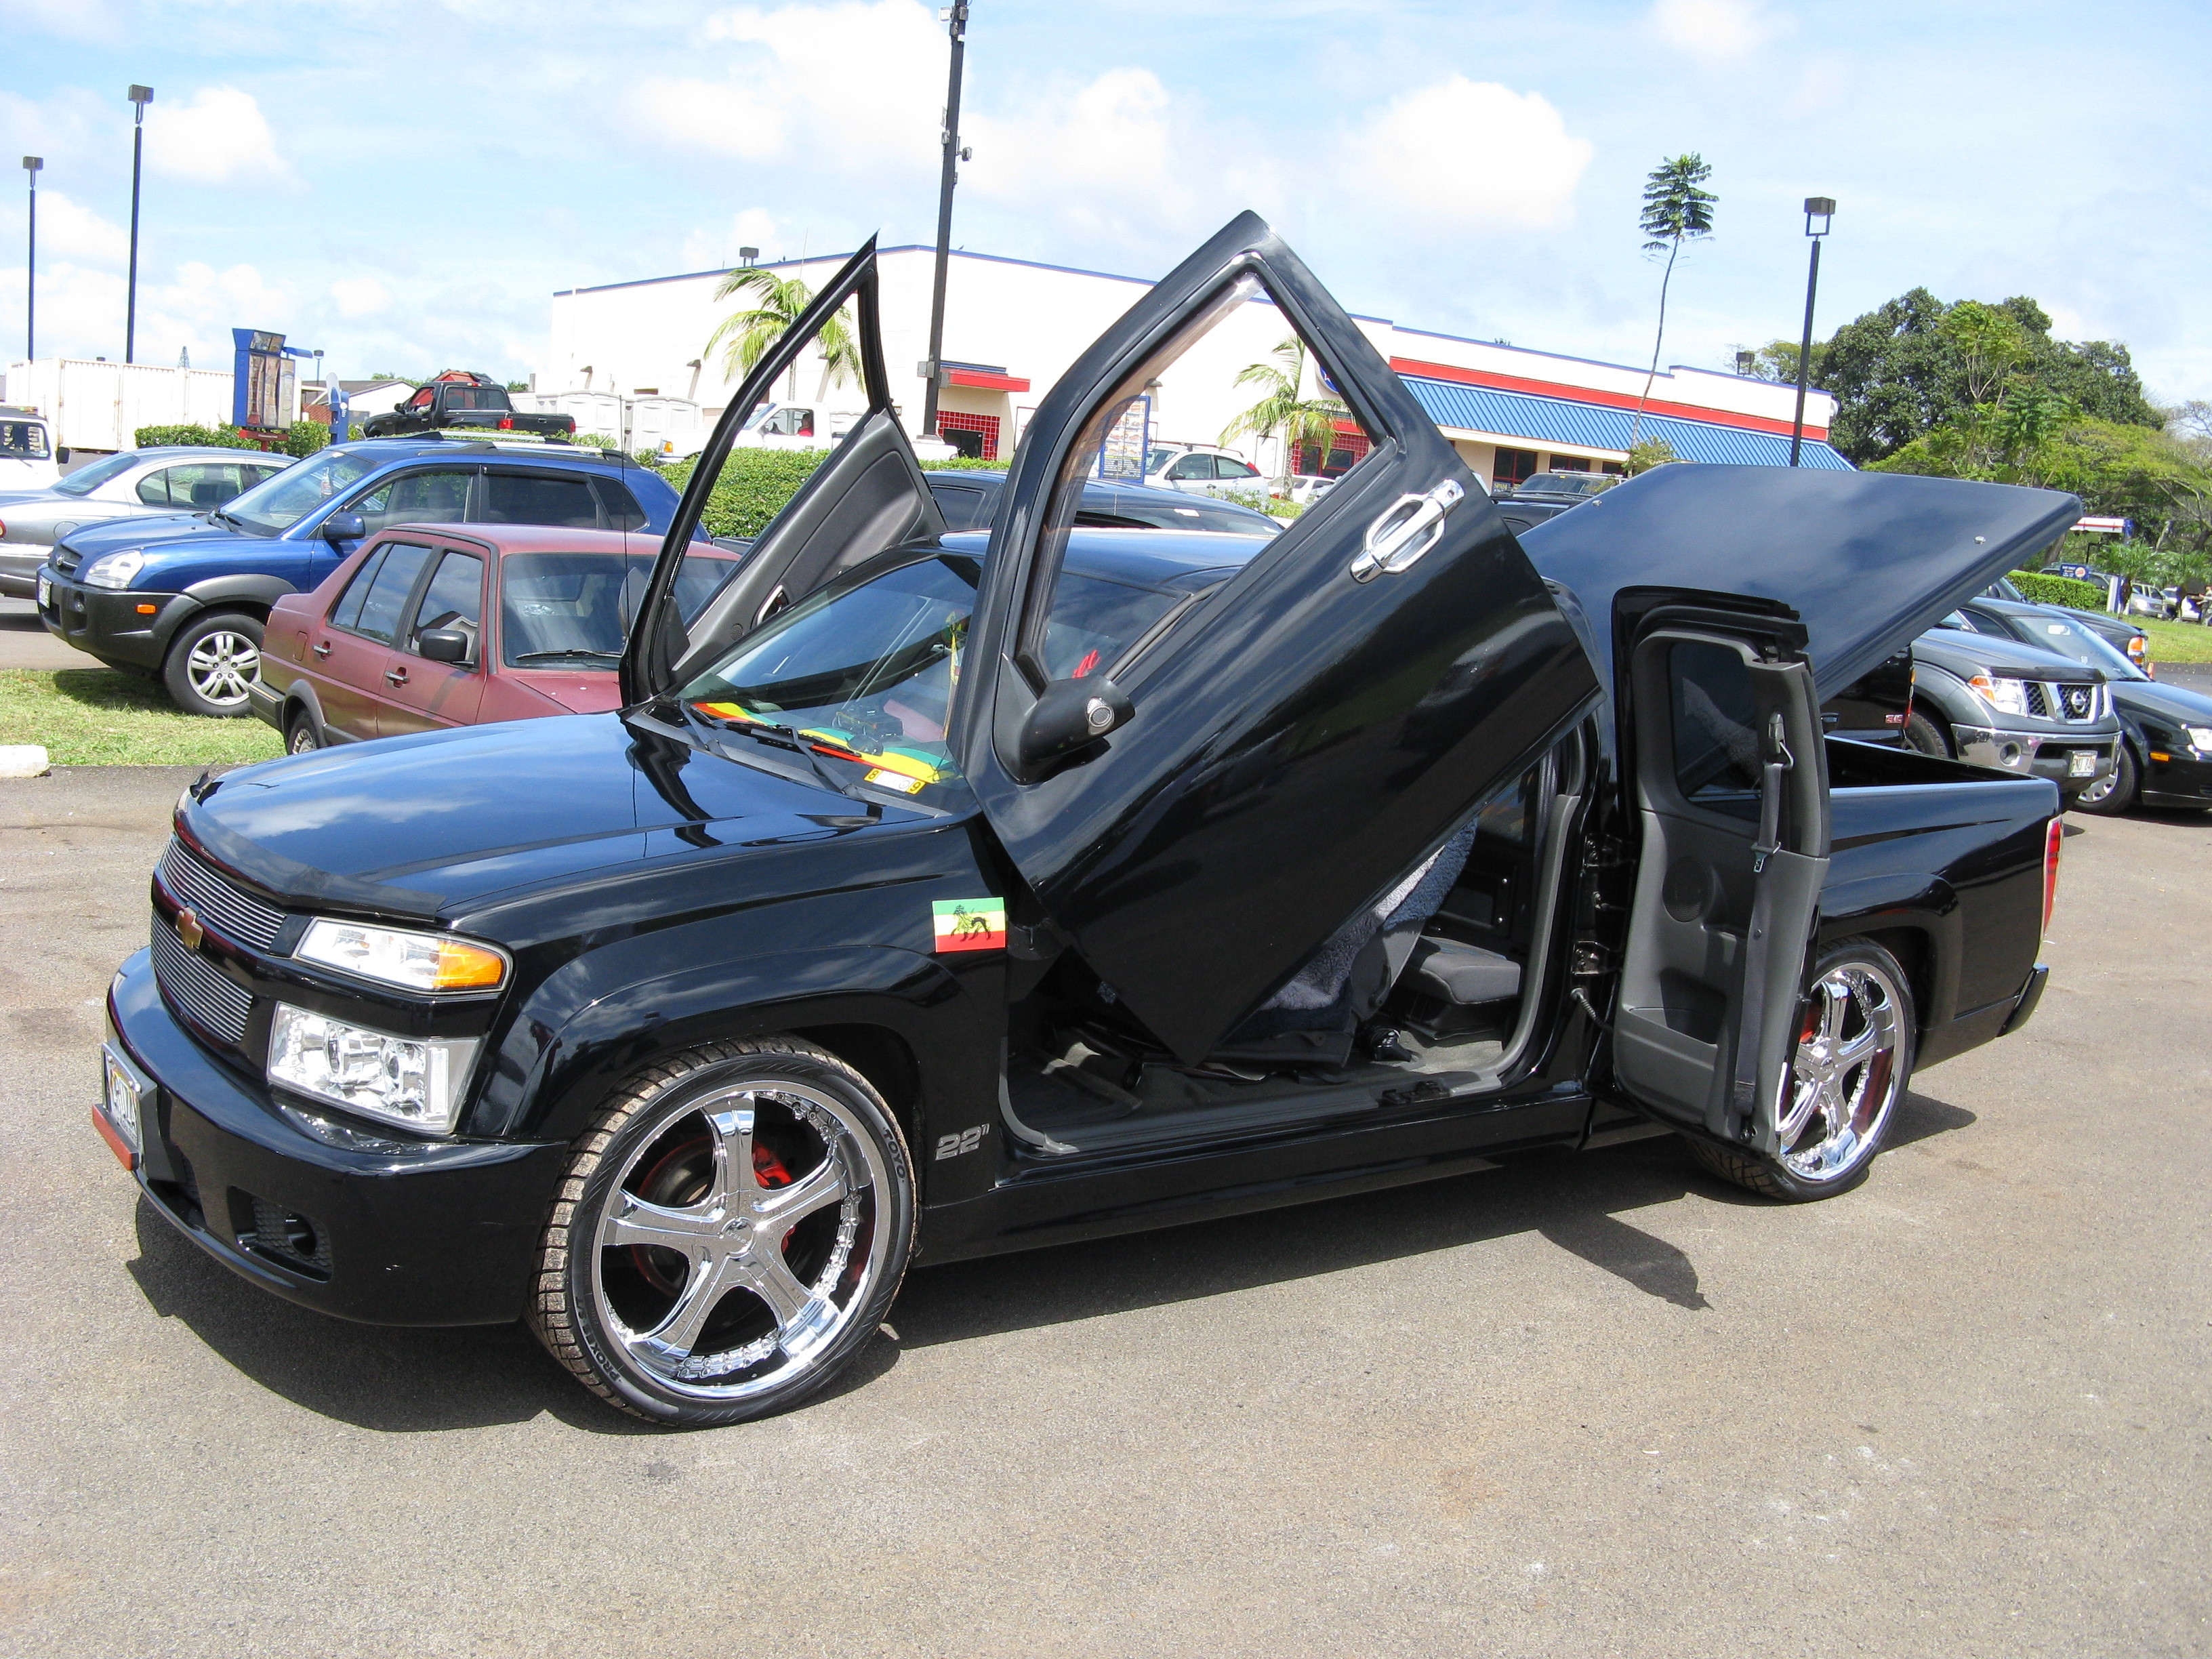 wilddiver143's 2005 Chevrolet Colorado Regular Cab in killeen, TX